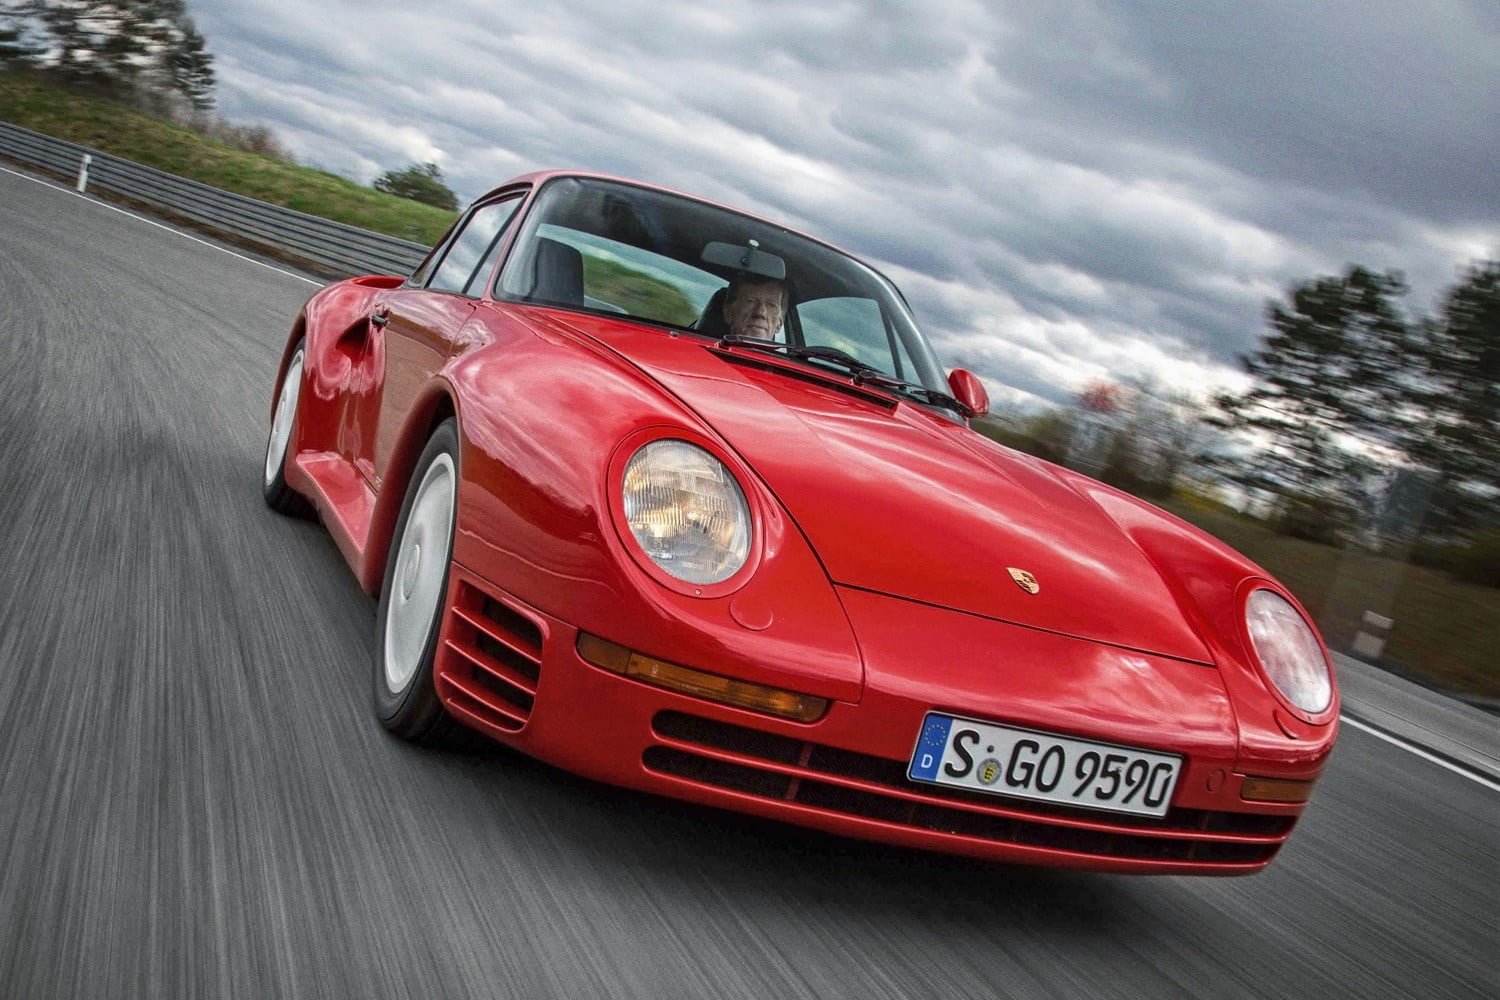 Porsche 3D Prints New Parts to Keep Classic Cars Running | Digital ...